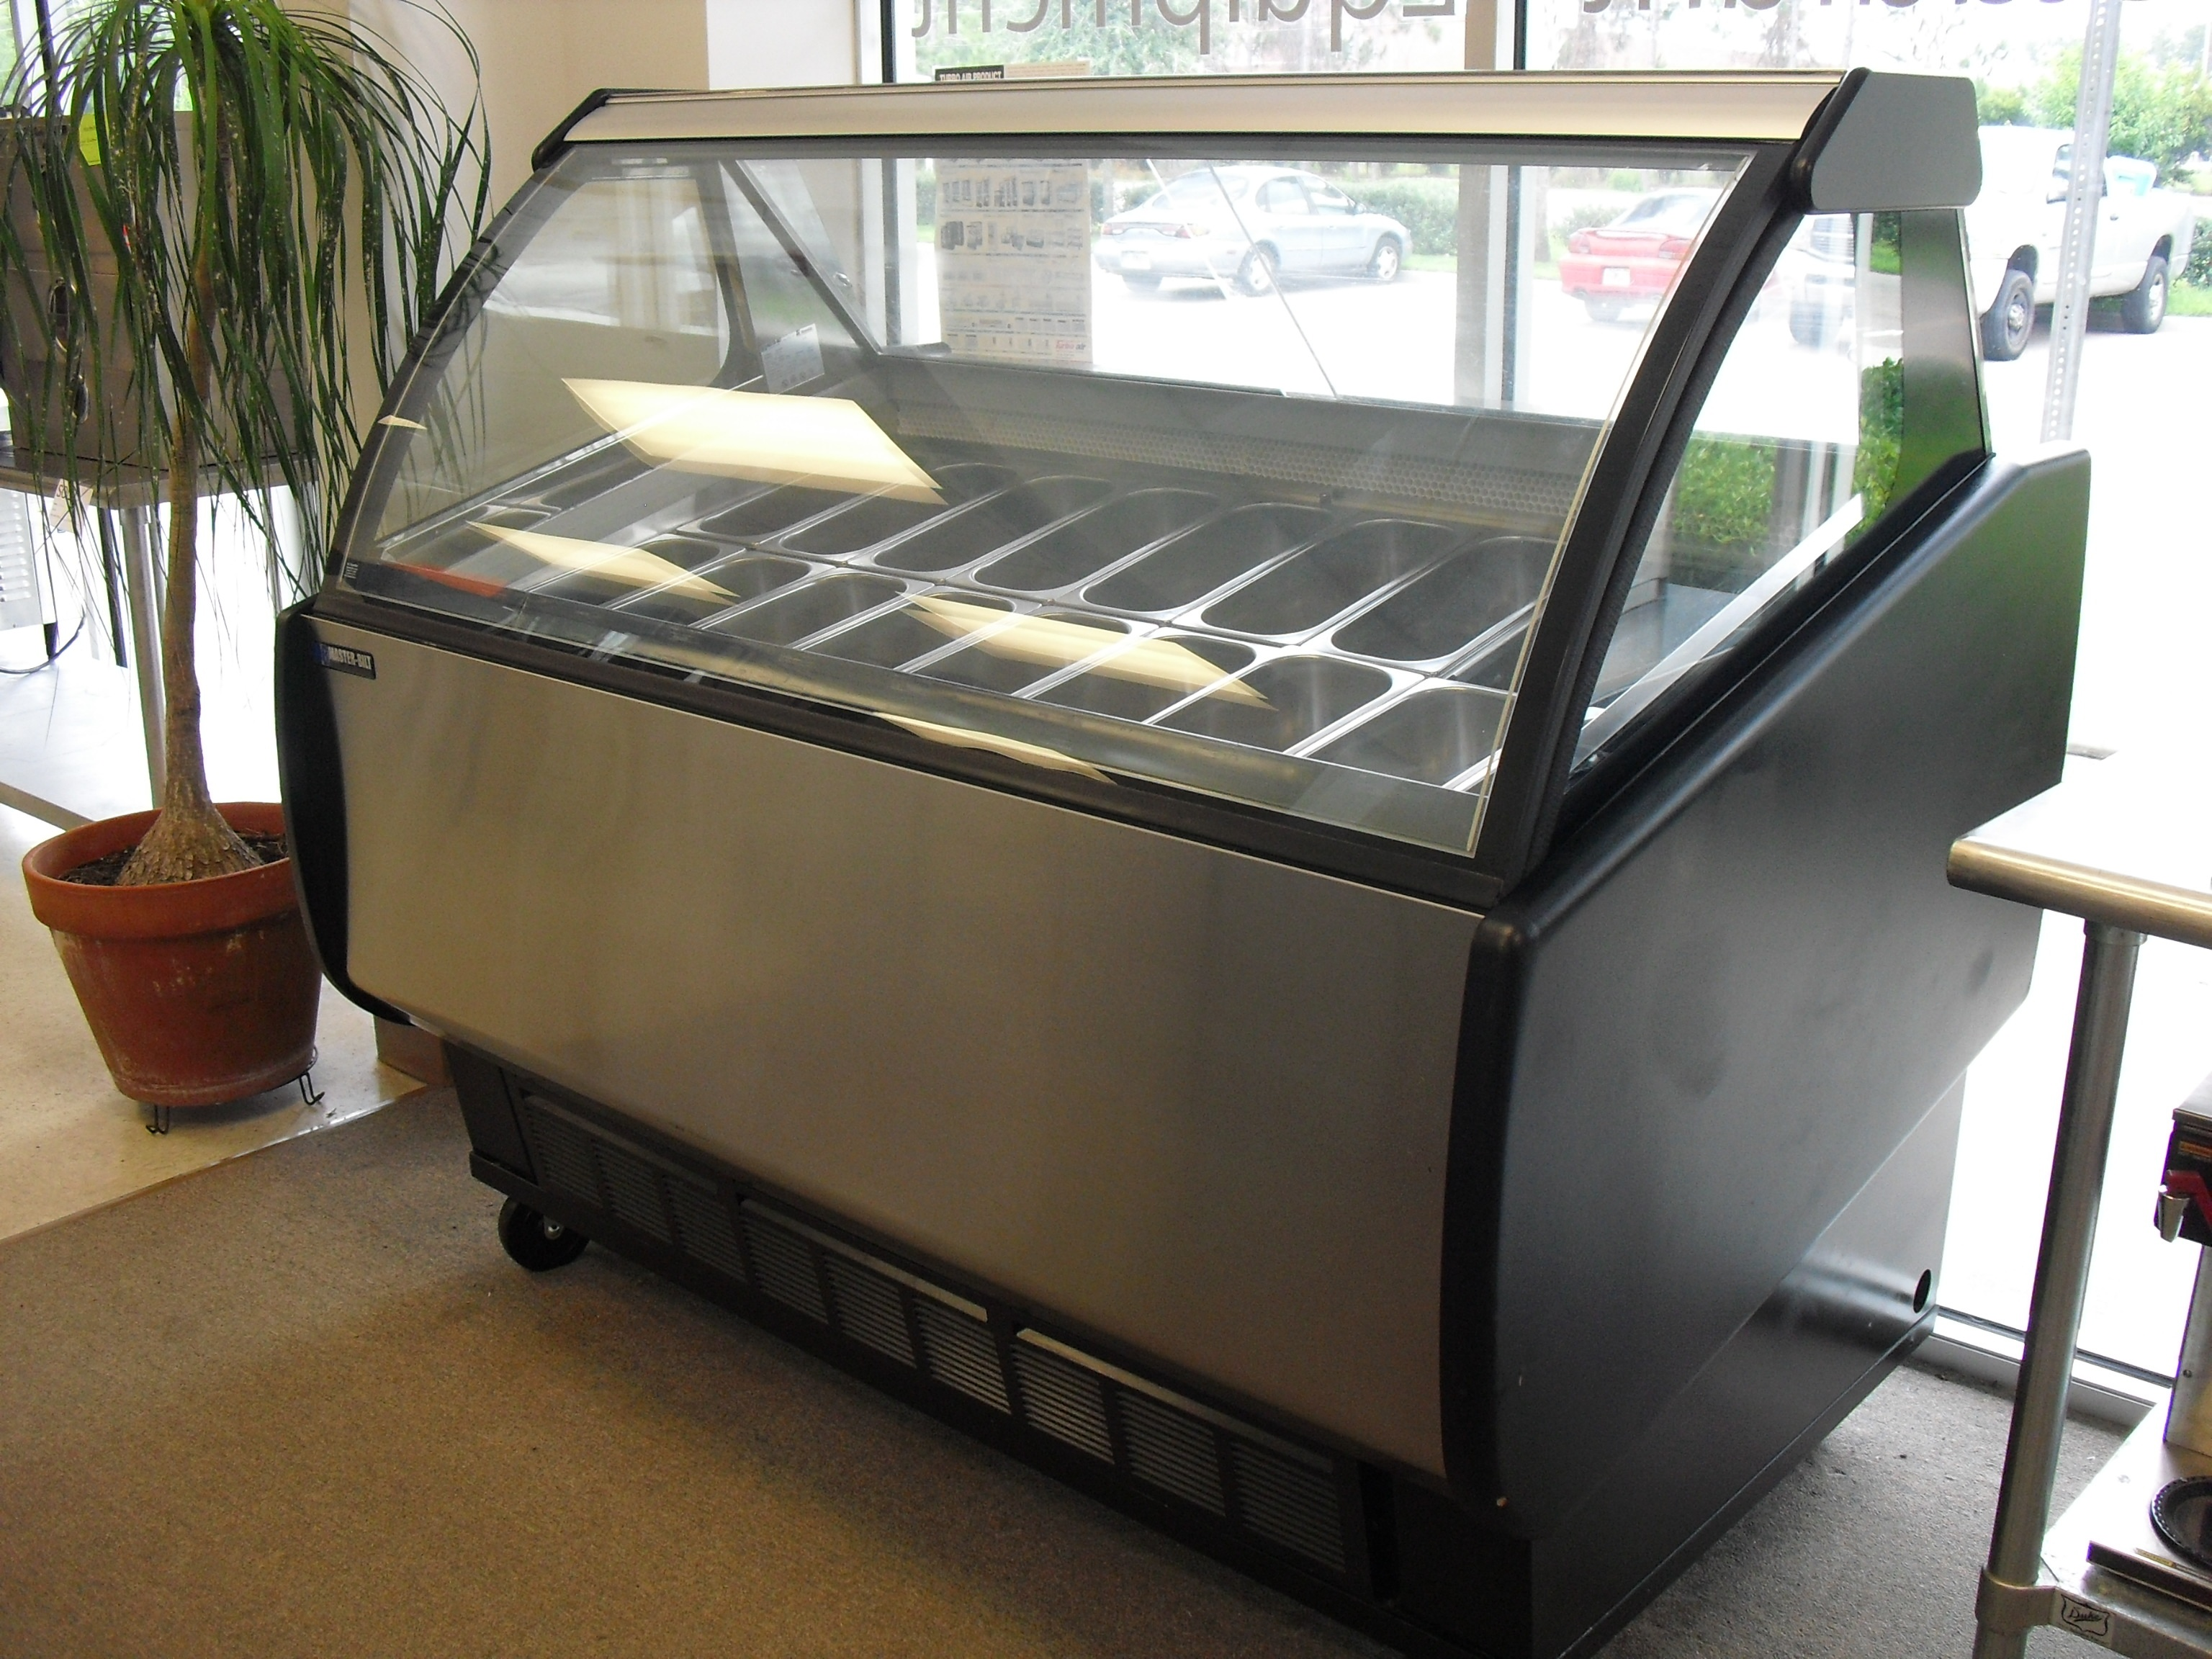 used restaurant chairs for sale motor fantastic gelato bakery equipment  one fat frog